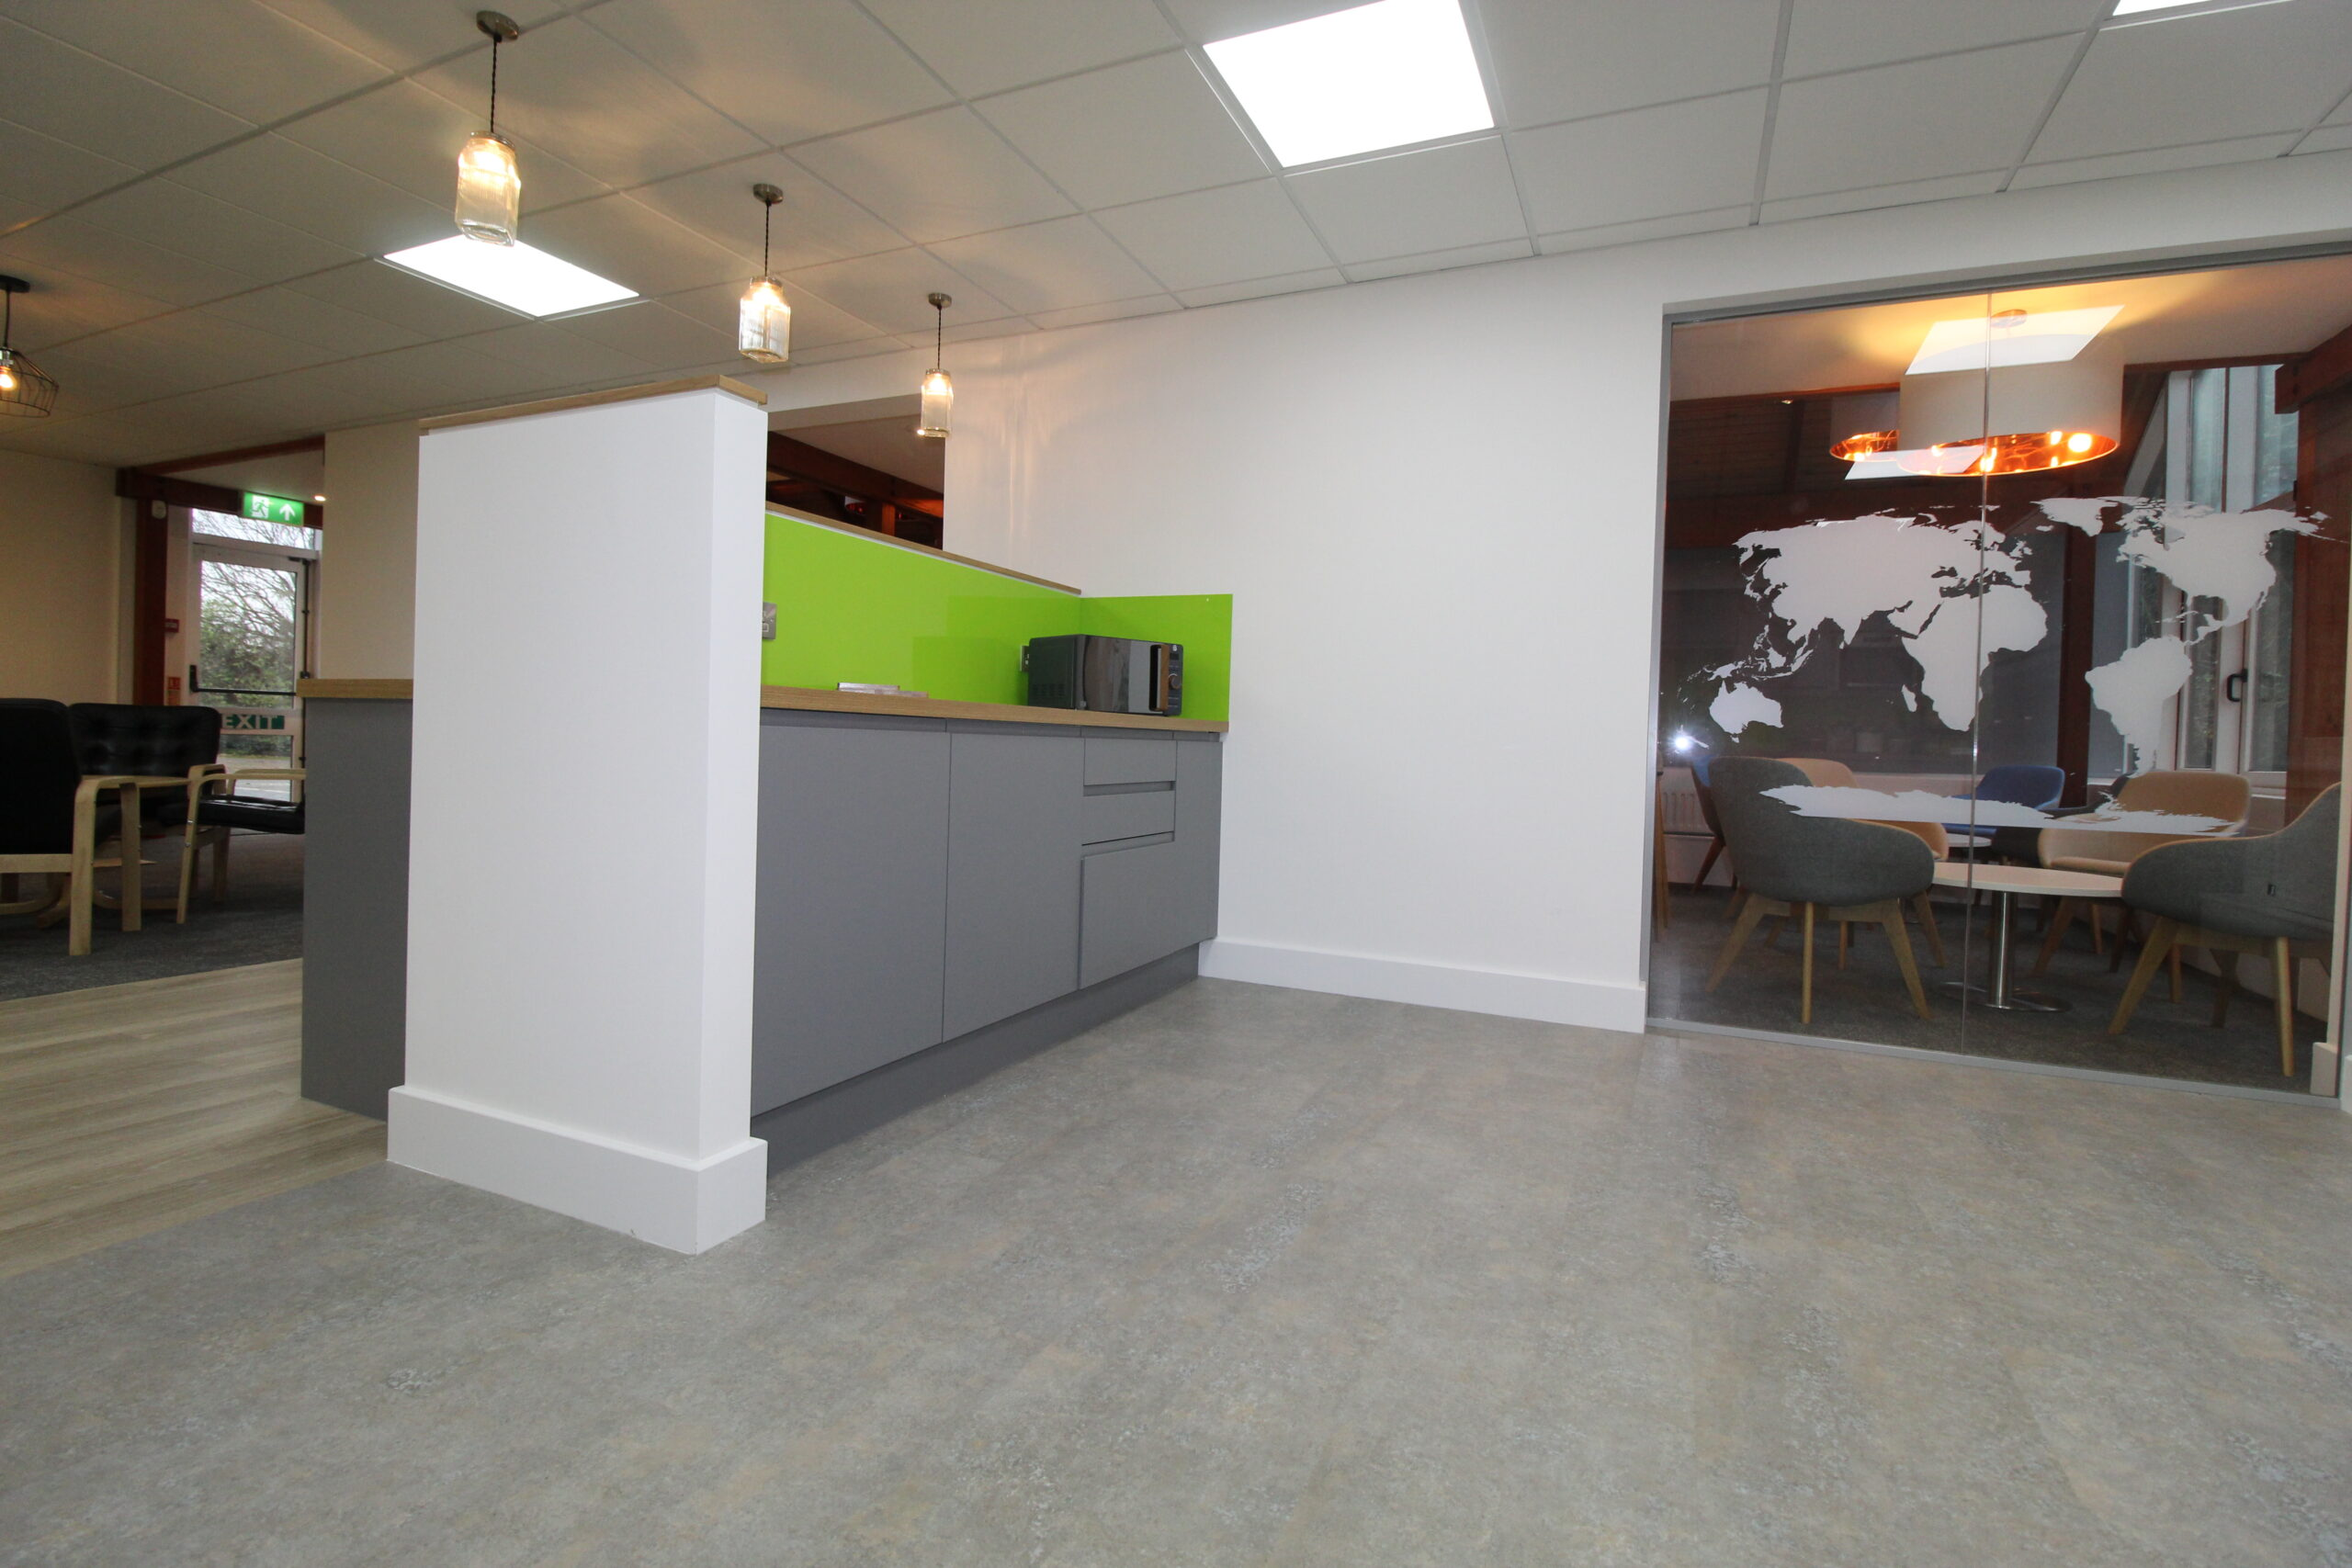 grey kitchen units with lime green splashback, Glass partiton with work map manifestation